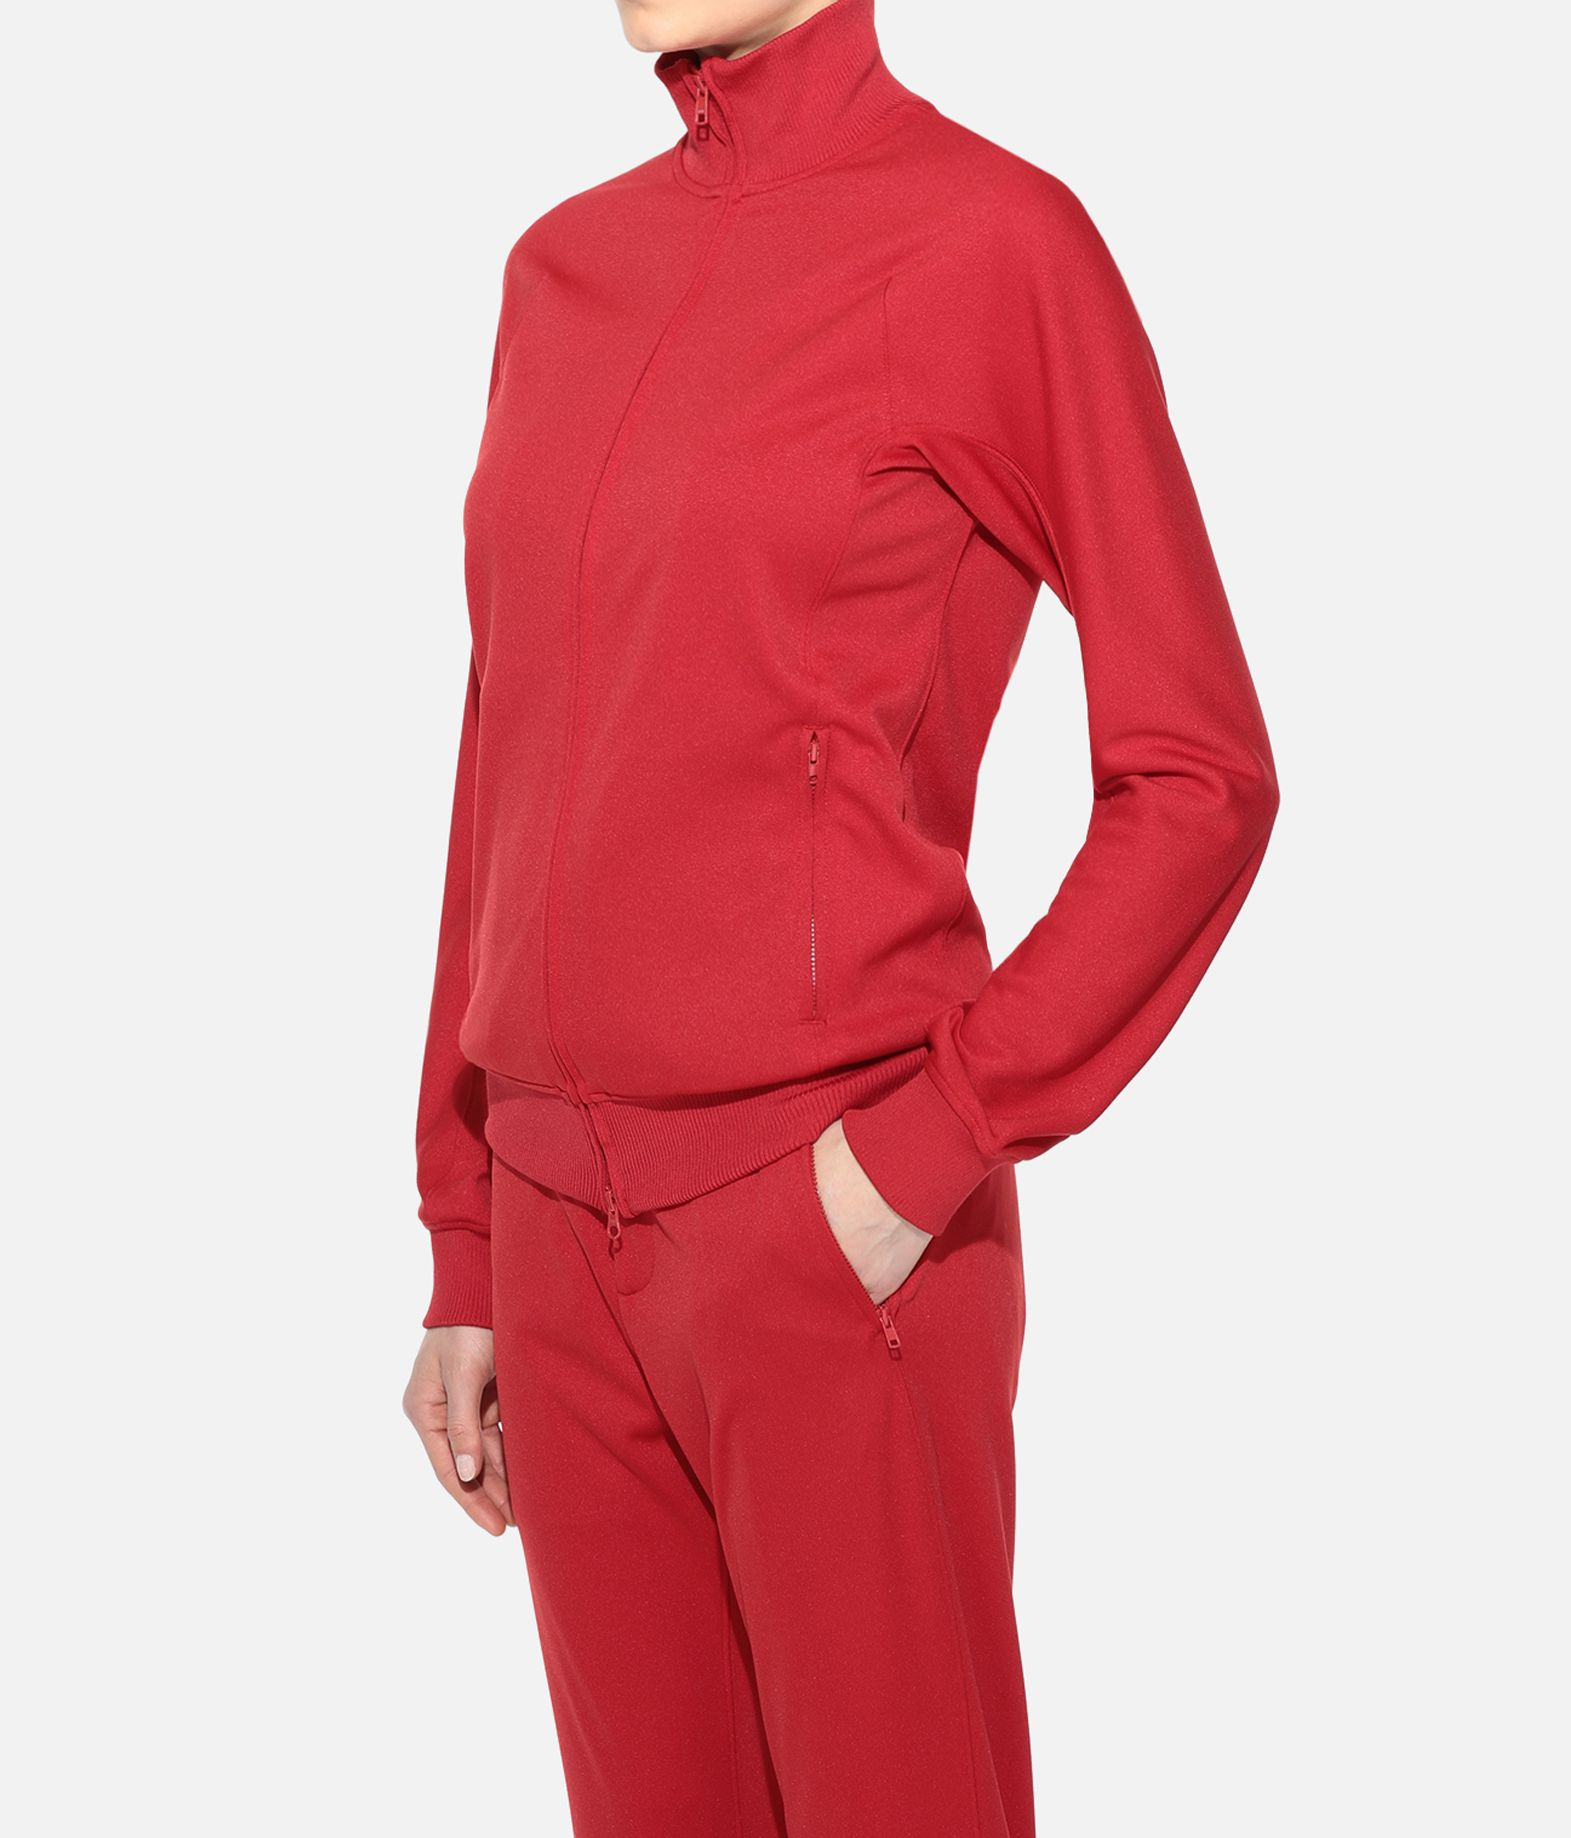 Y-3 Y-3 Classic Track Jacket Track top Woman e